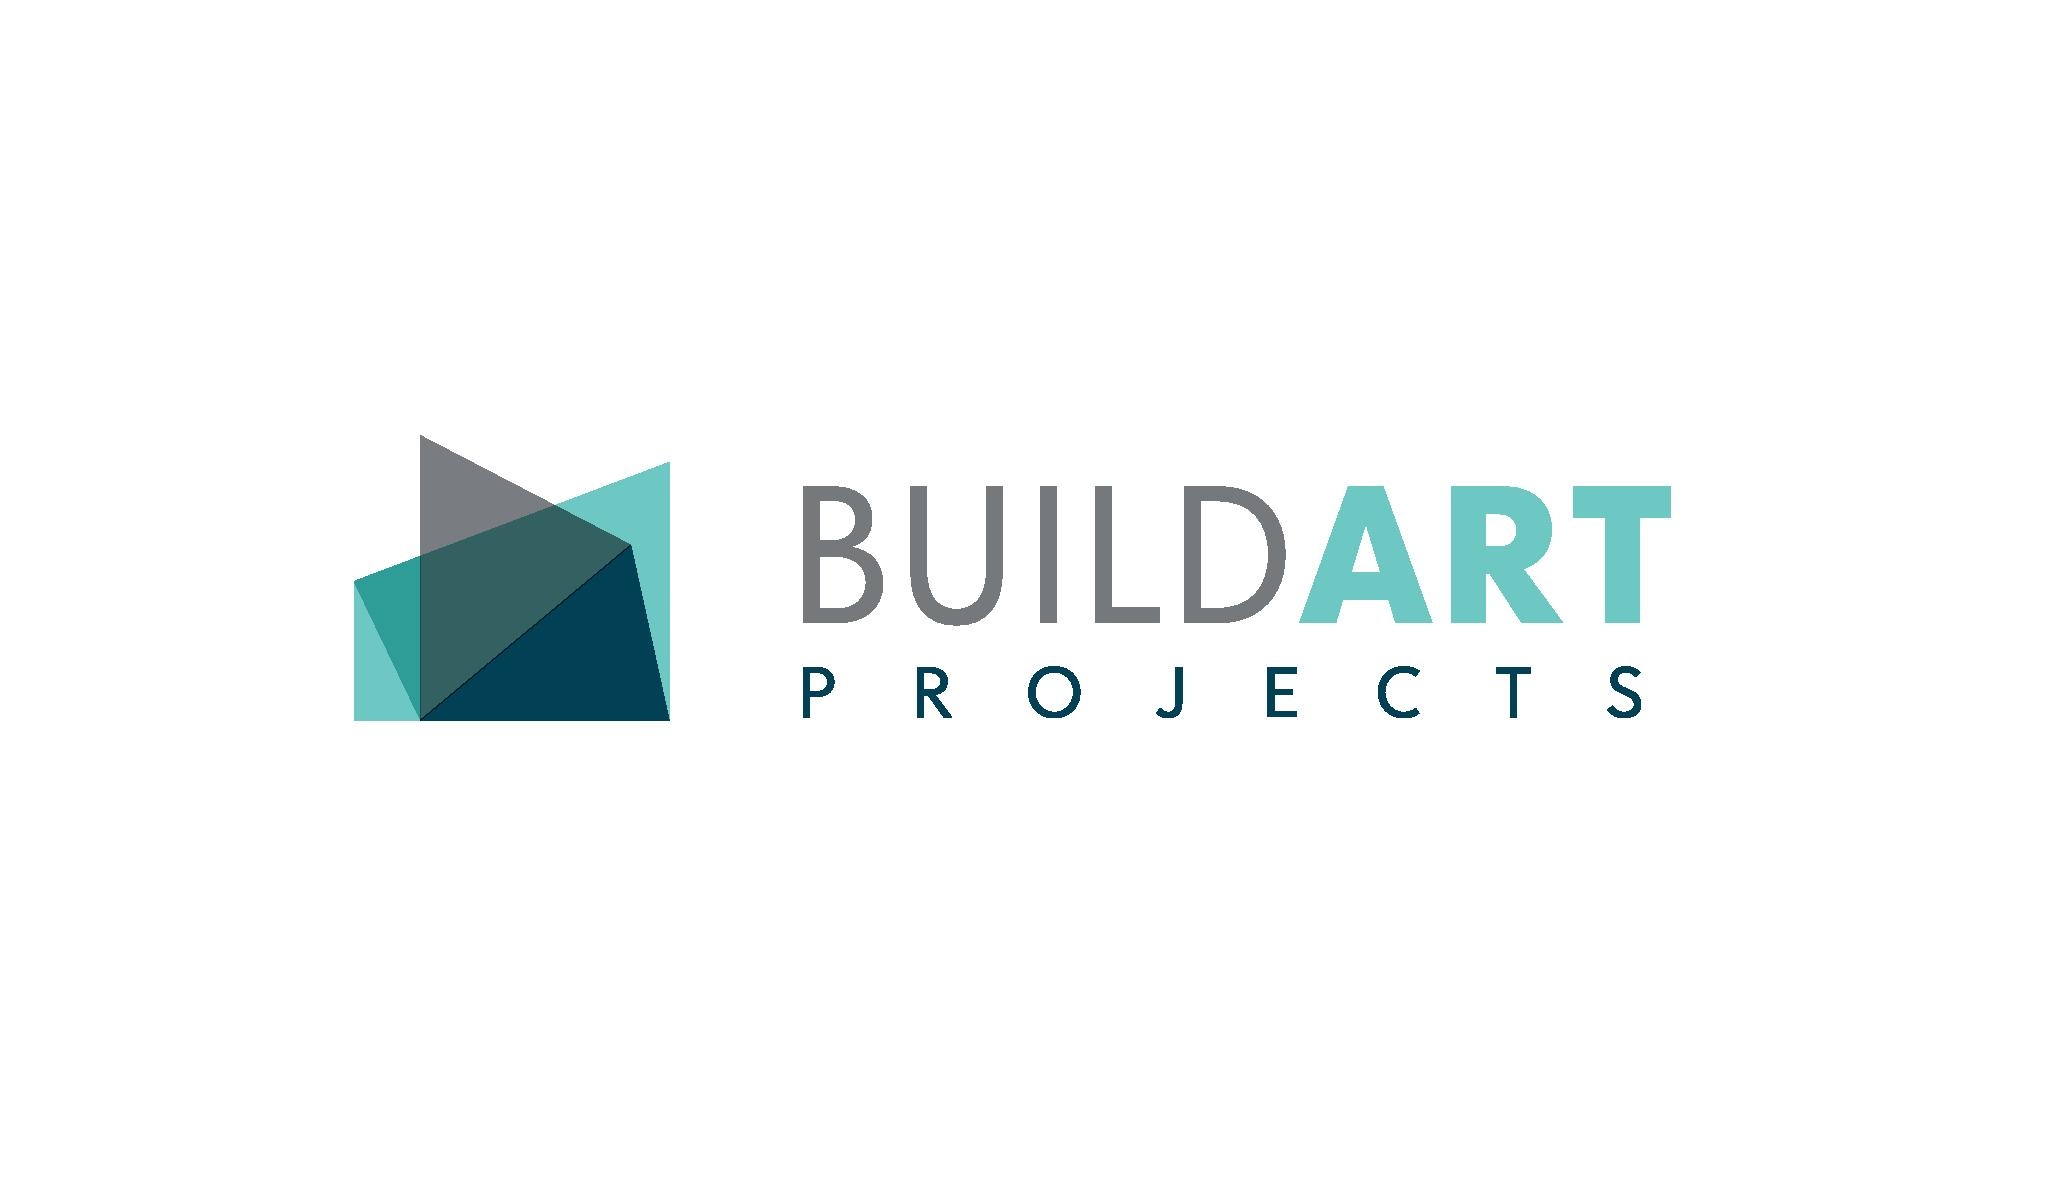 BUILDART PROJECTS FA CMYK